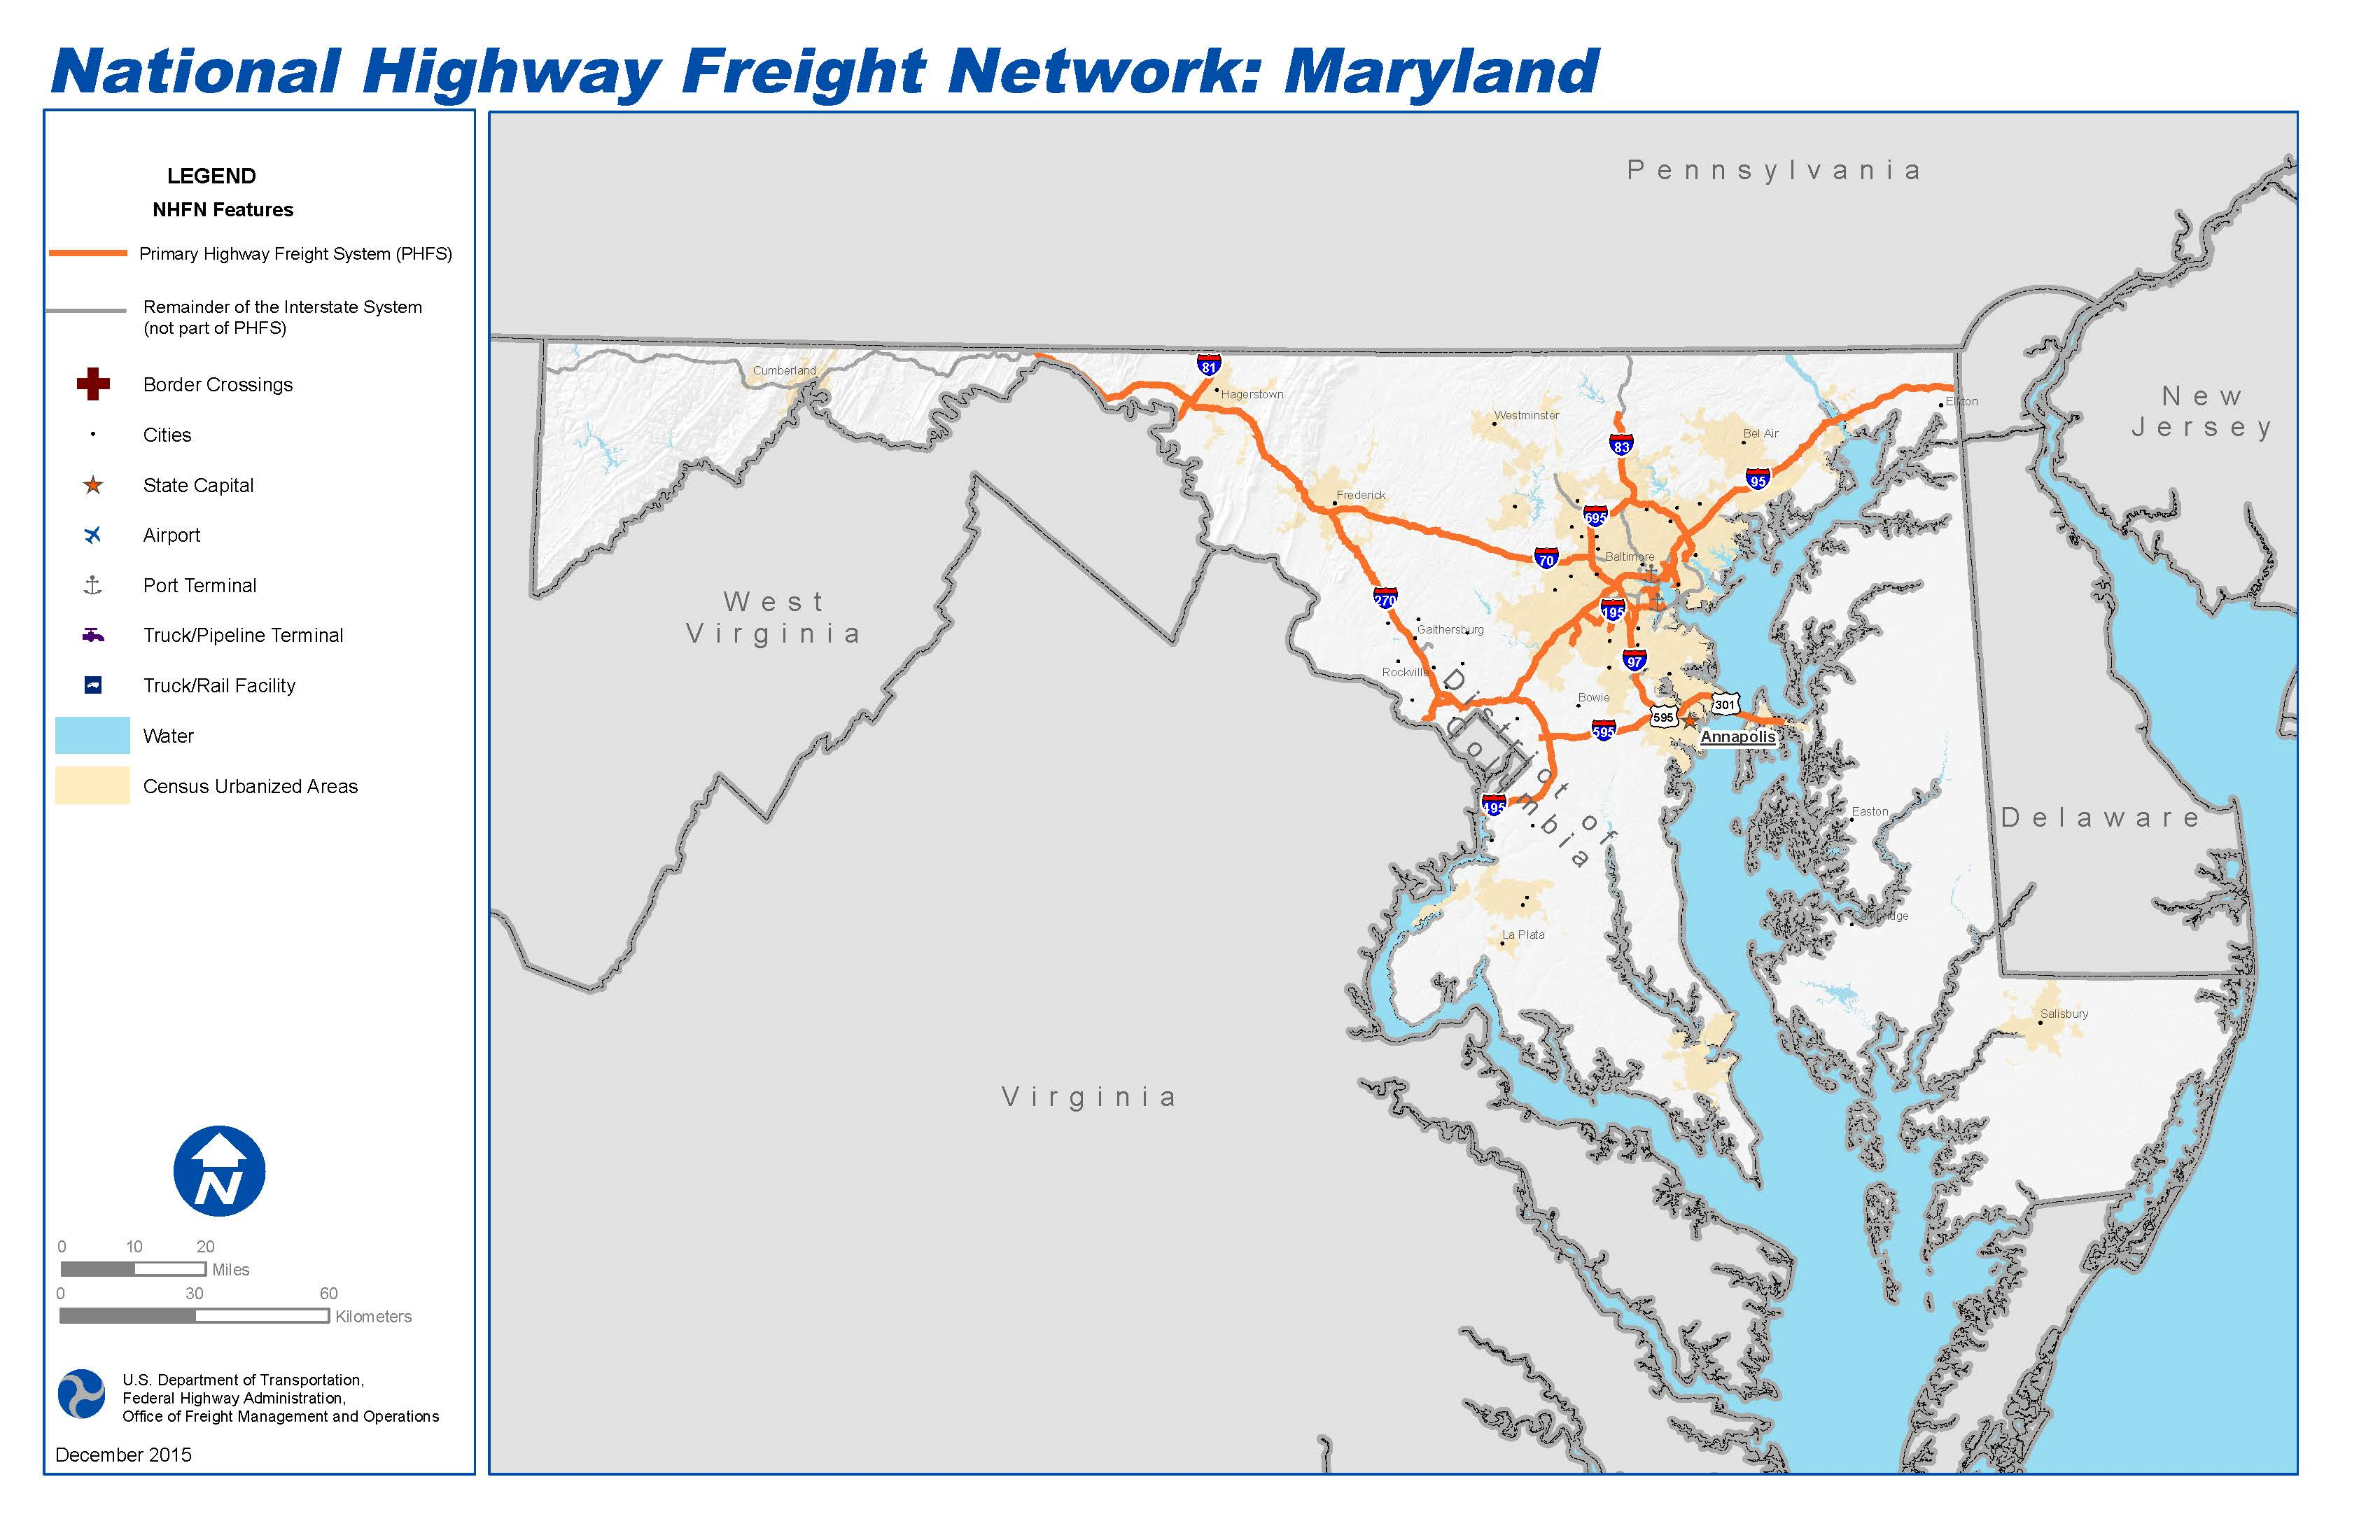 National Highway Freight Network Map And Tables For Maryland - Maryland map and cities